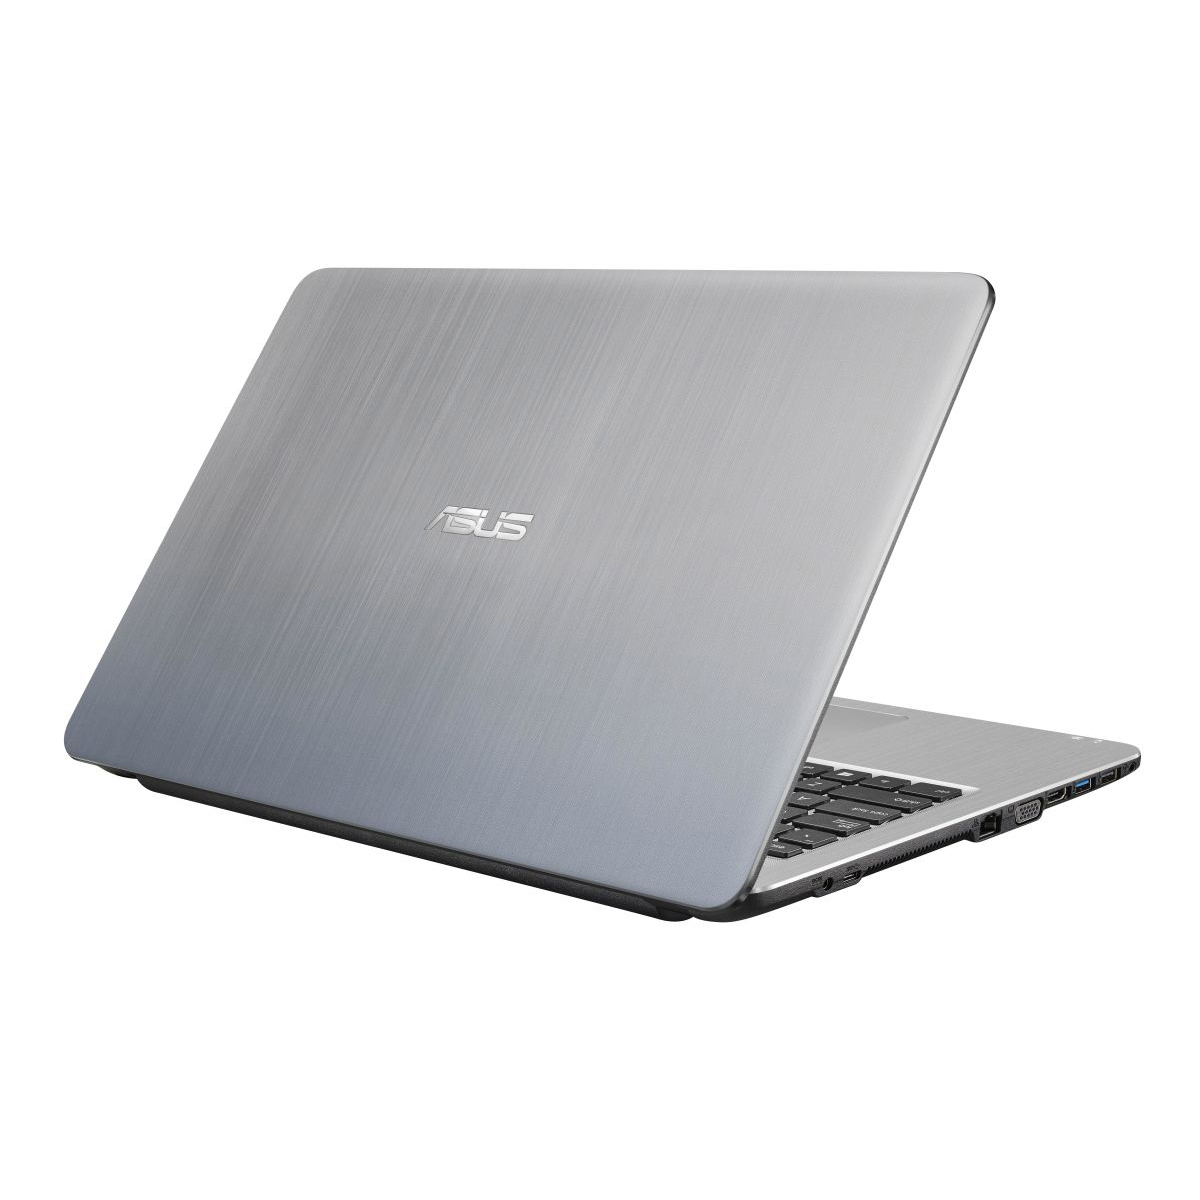 NOTEBOOK ASUS F540UA-GQ1795 I3 7020U 2.30GHz 3M 4G HD 1T VGA INTEL 15.6 SILVER ,Laptop Pc